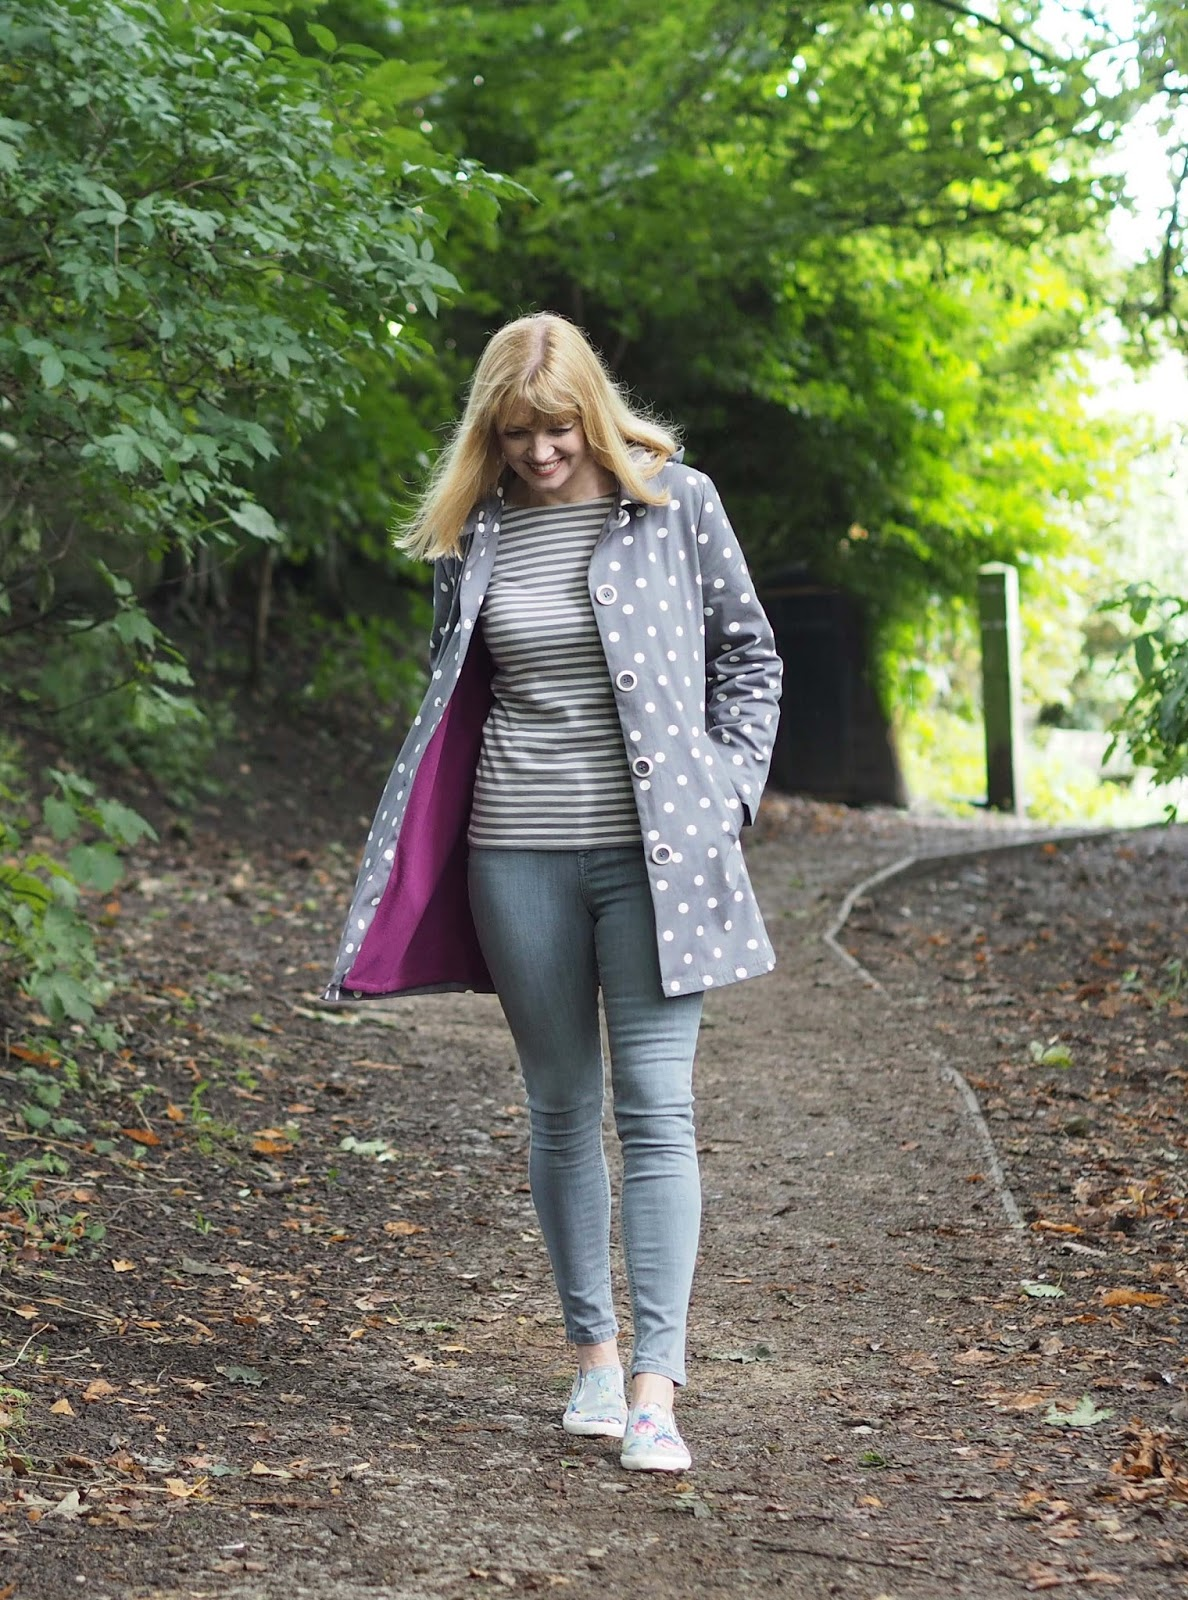 Tulchan spotted raincoat, striped top, grey jeans